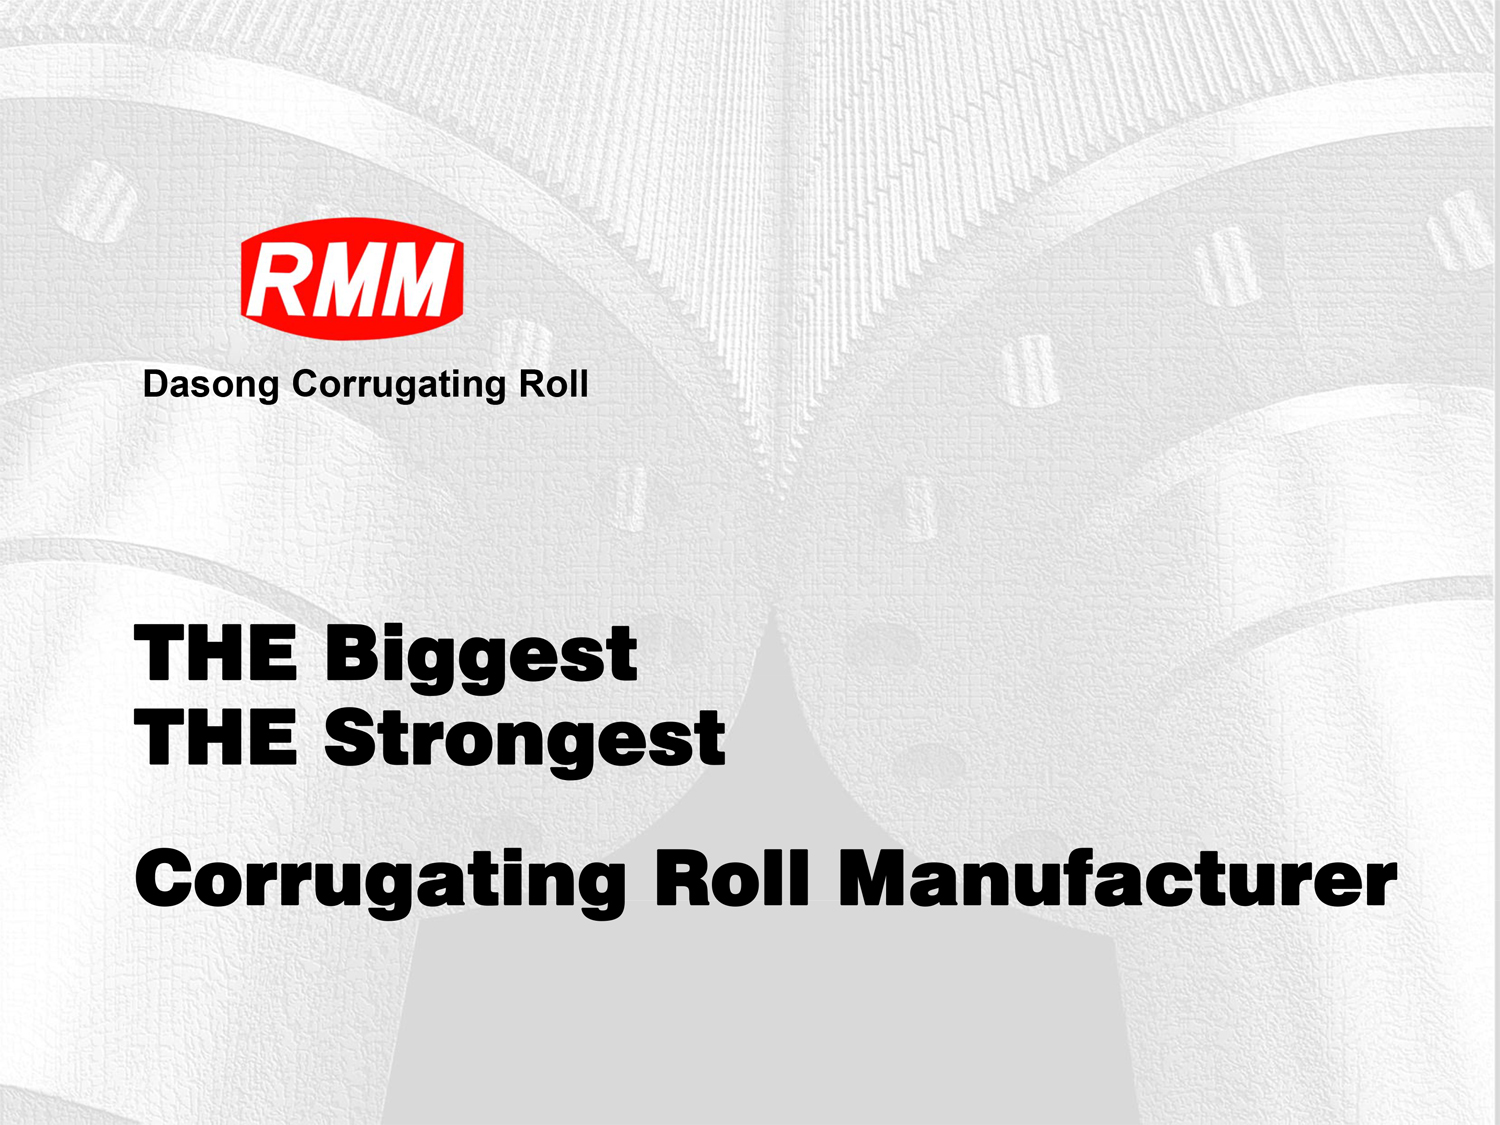 Learn more in the RMM Corrugating Roll Manufacturer Brochure